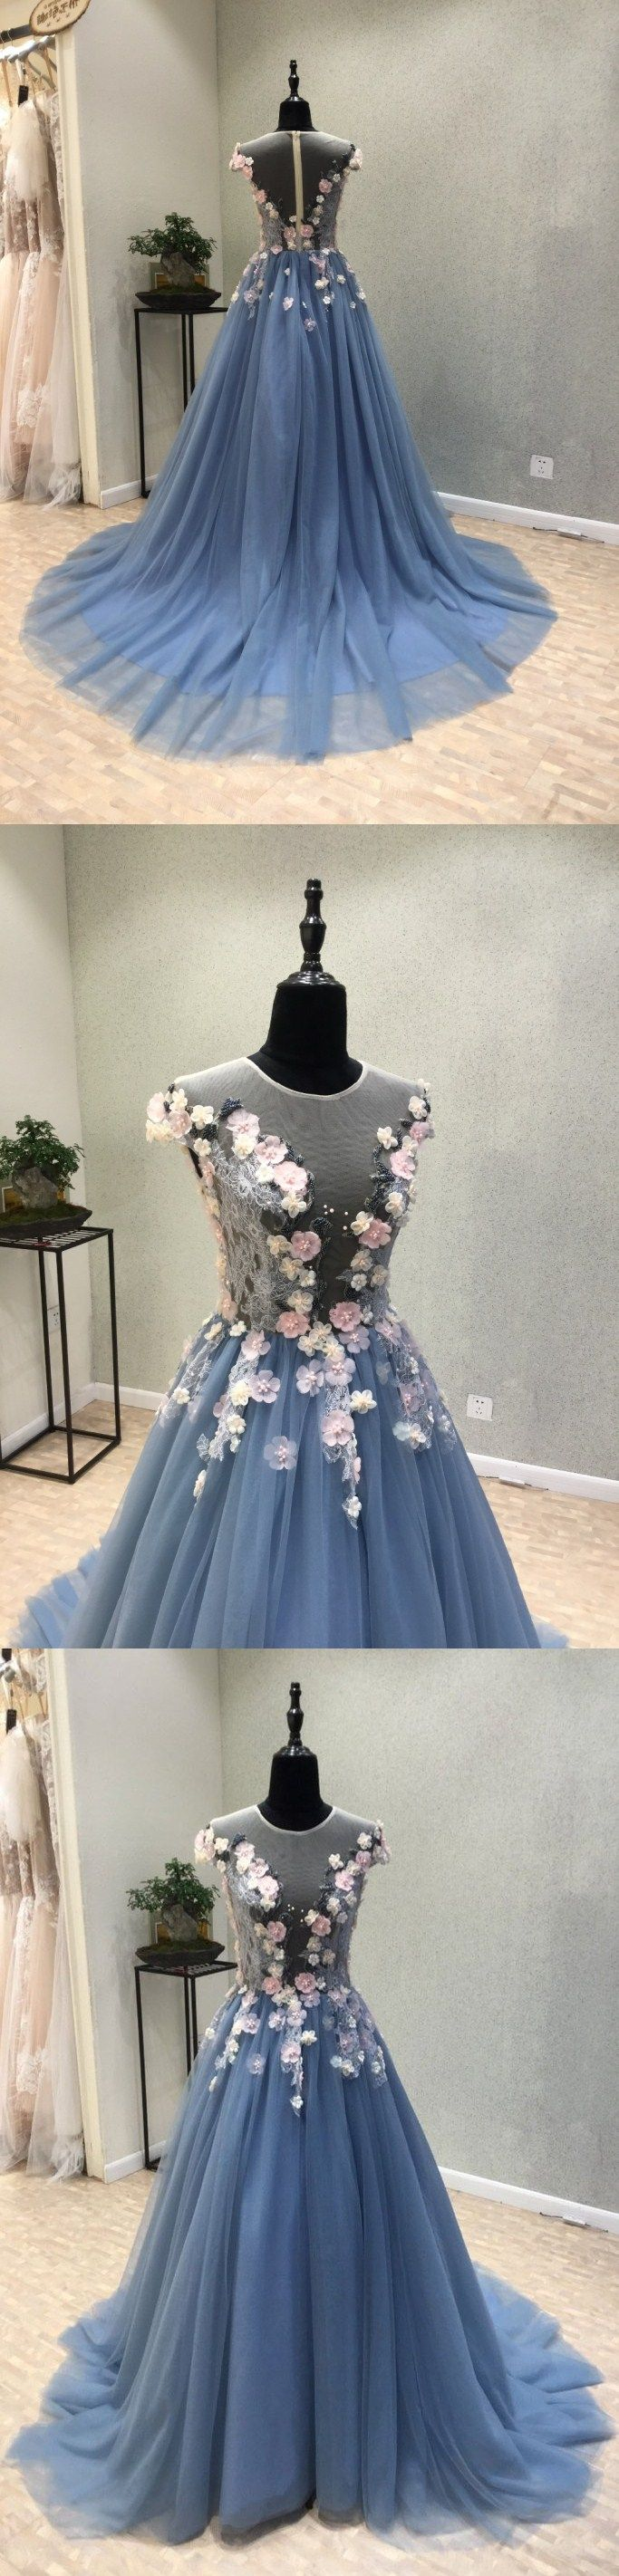 prom dress#prom dress long #cap sleeves prom dress plus size#prom dress flowers floral#sheer prom dress sexy